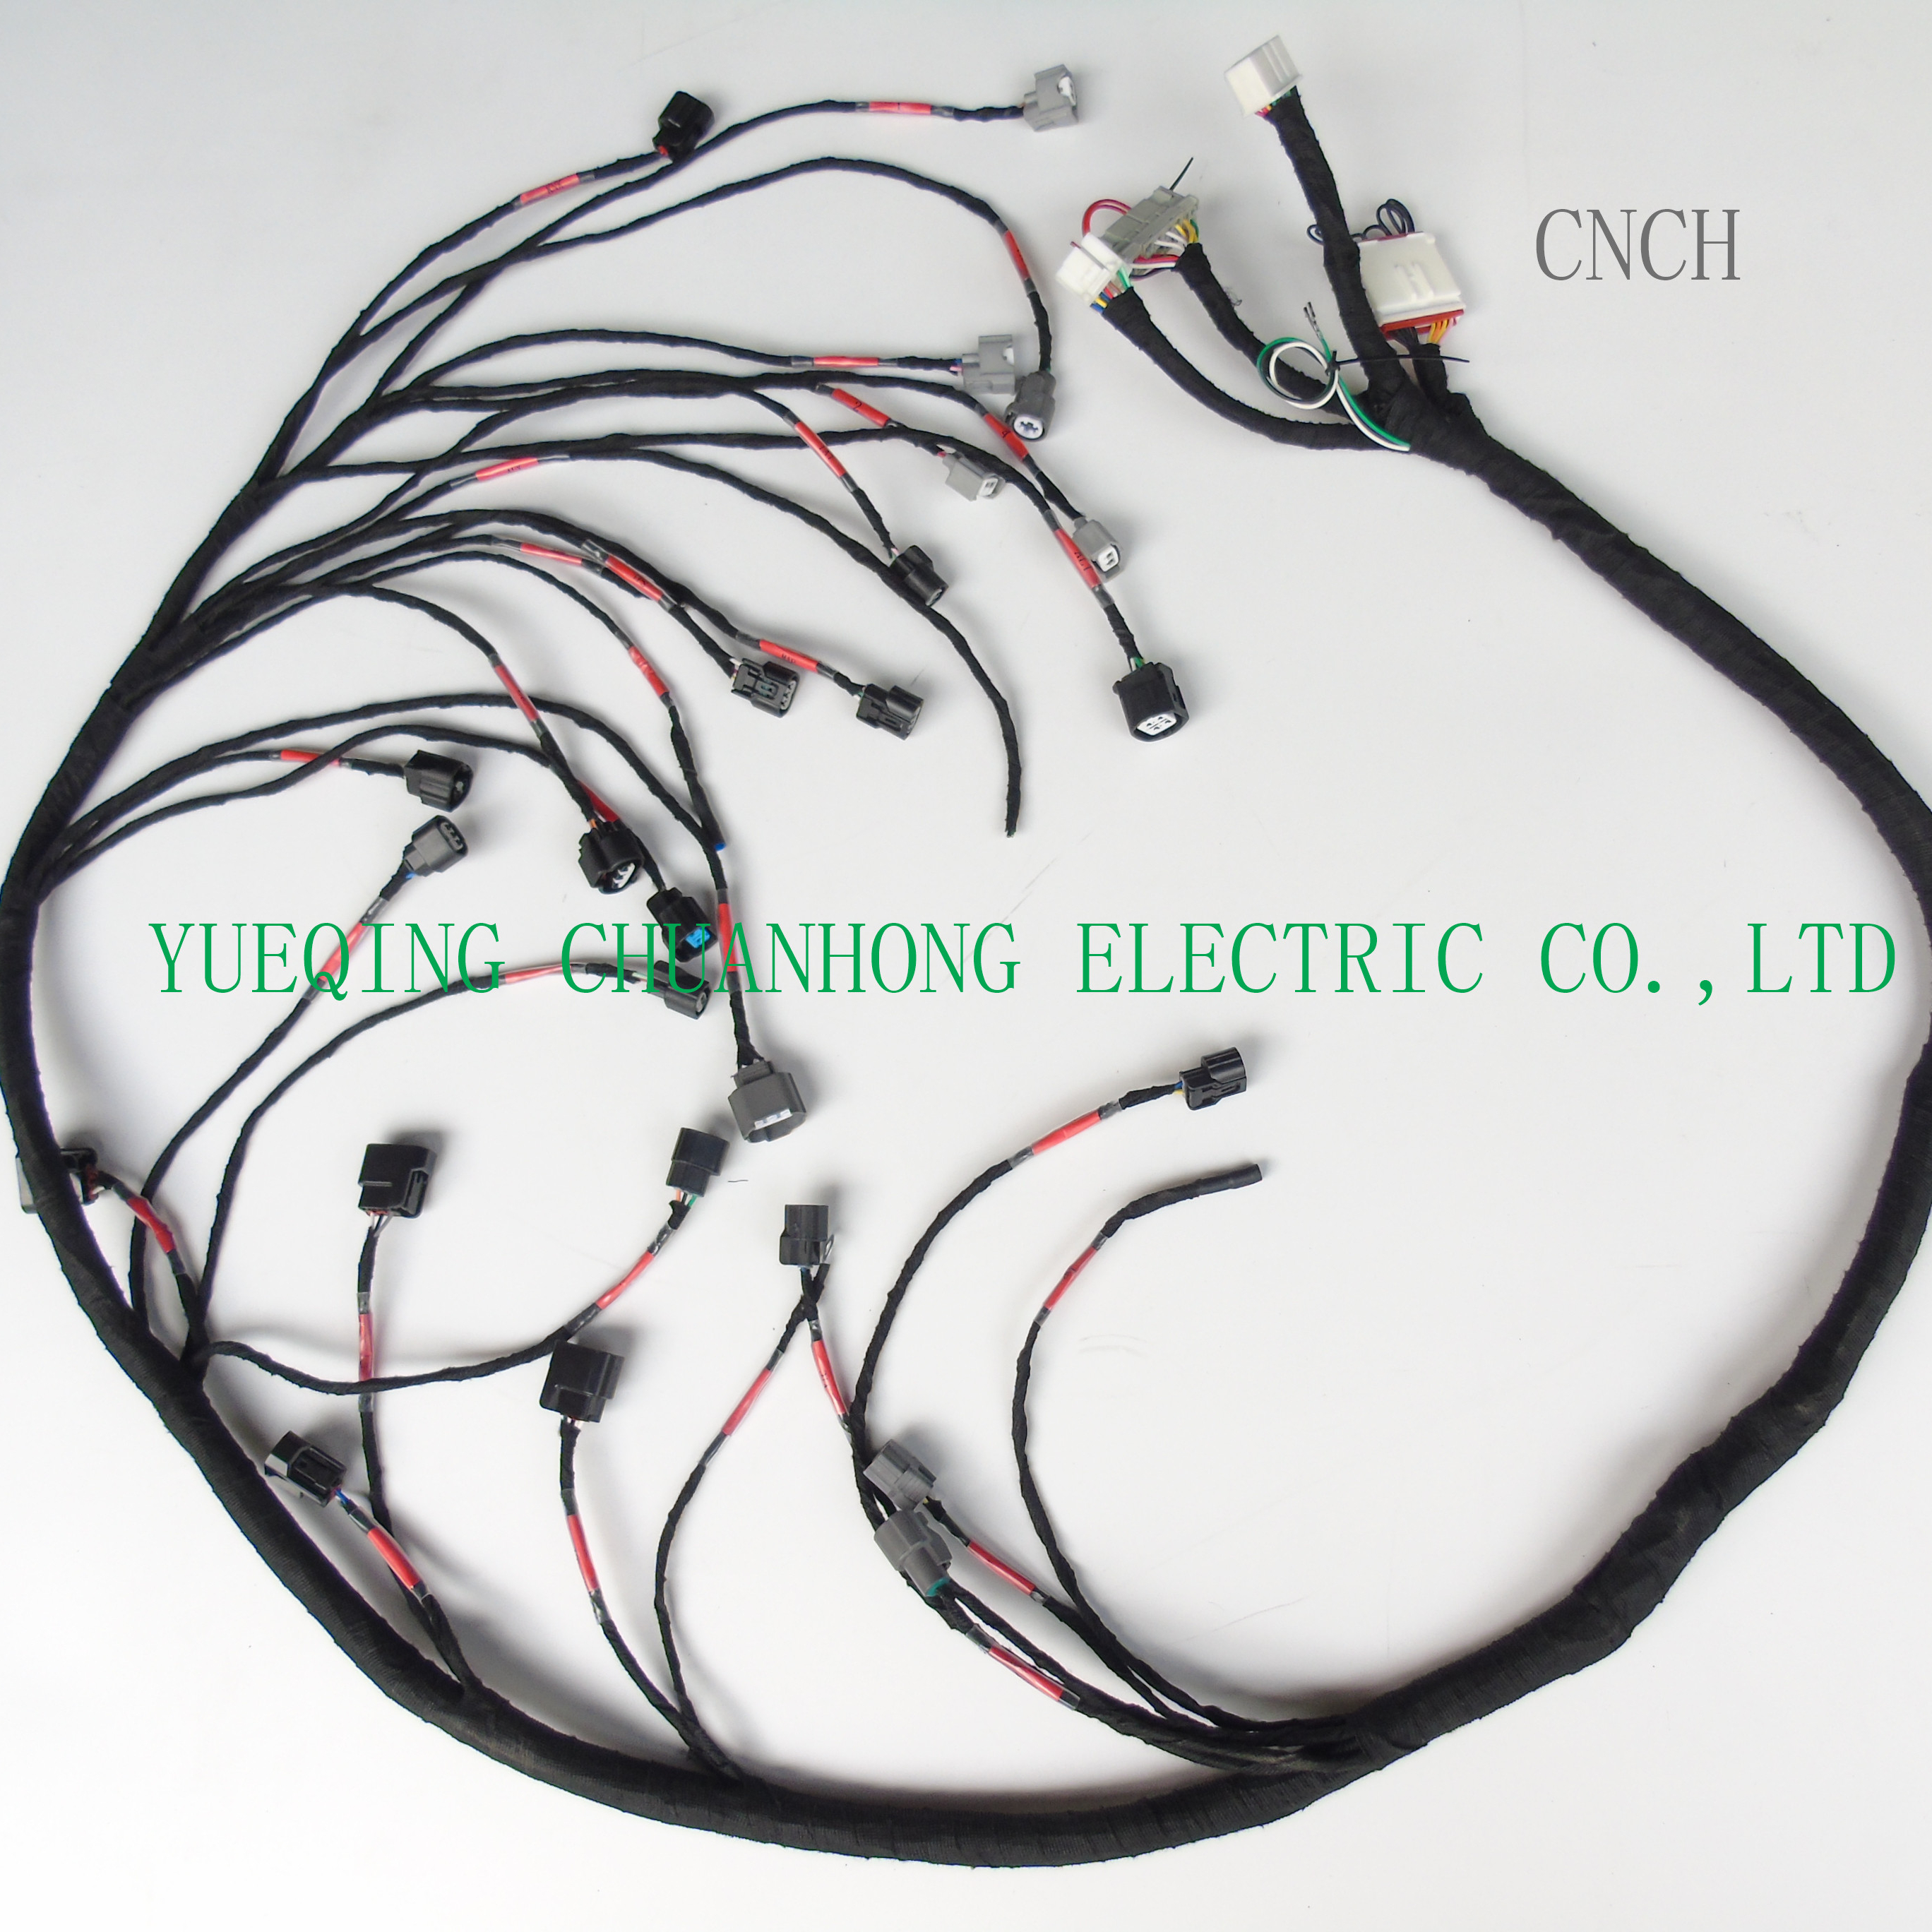 [XOTG_4463]  K20 K20a2 K-series Tucked Engine Harness For Honda Acura Toyota Mr2 K-swap  - Buy 02-04 Rsx Type-s Harness,Rsx Base Or Ep3 With Type S Or K24 Swap,Wiring  Harness Product on Alibaba.com | K20 Mr2 Swap Wiring Harness |  | Alibaba.com